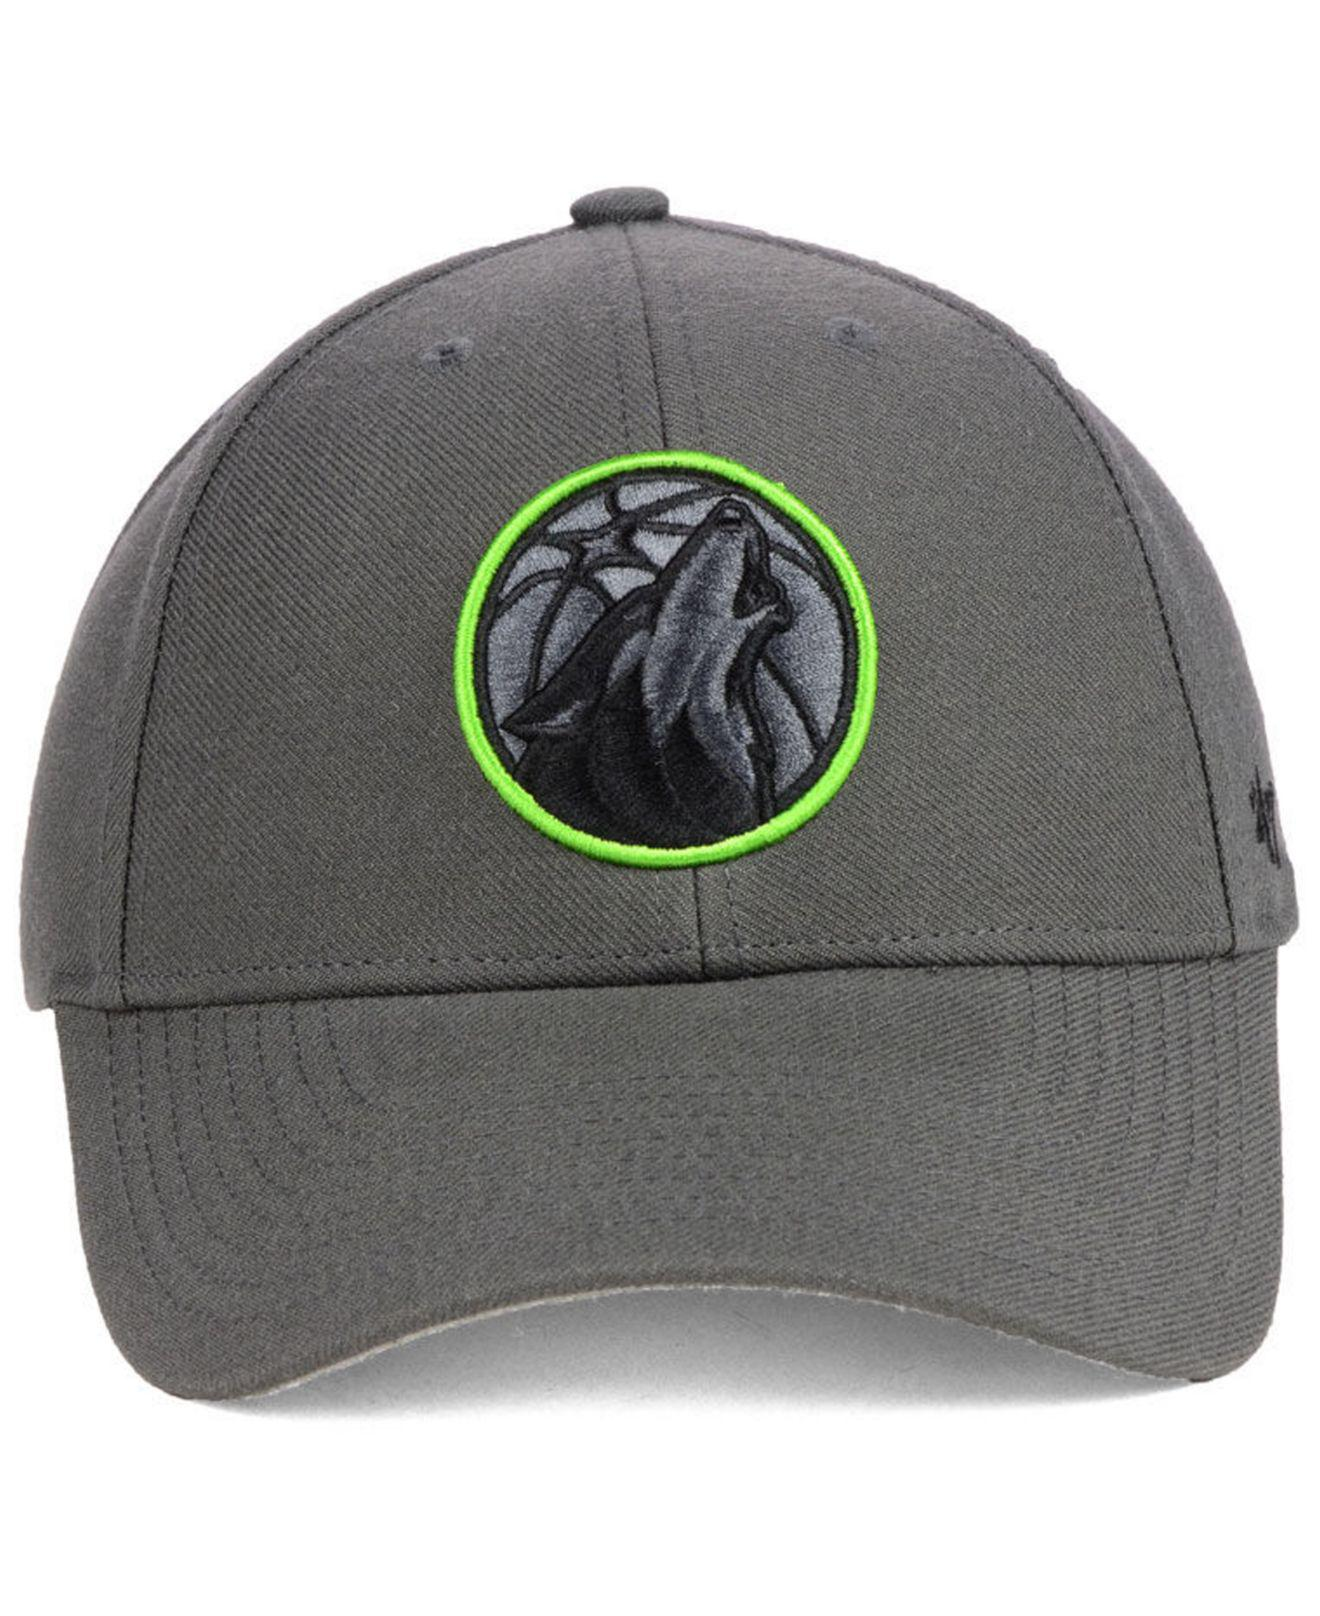 new products a4ce9 8b6f4 discount code for washington wizards camouflage caps 55ab0 faa2f  purchase  lyst 47 brand minnesota timberwolves charcoal pop mvp cap in gray for men  2db37 ...